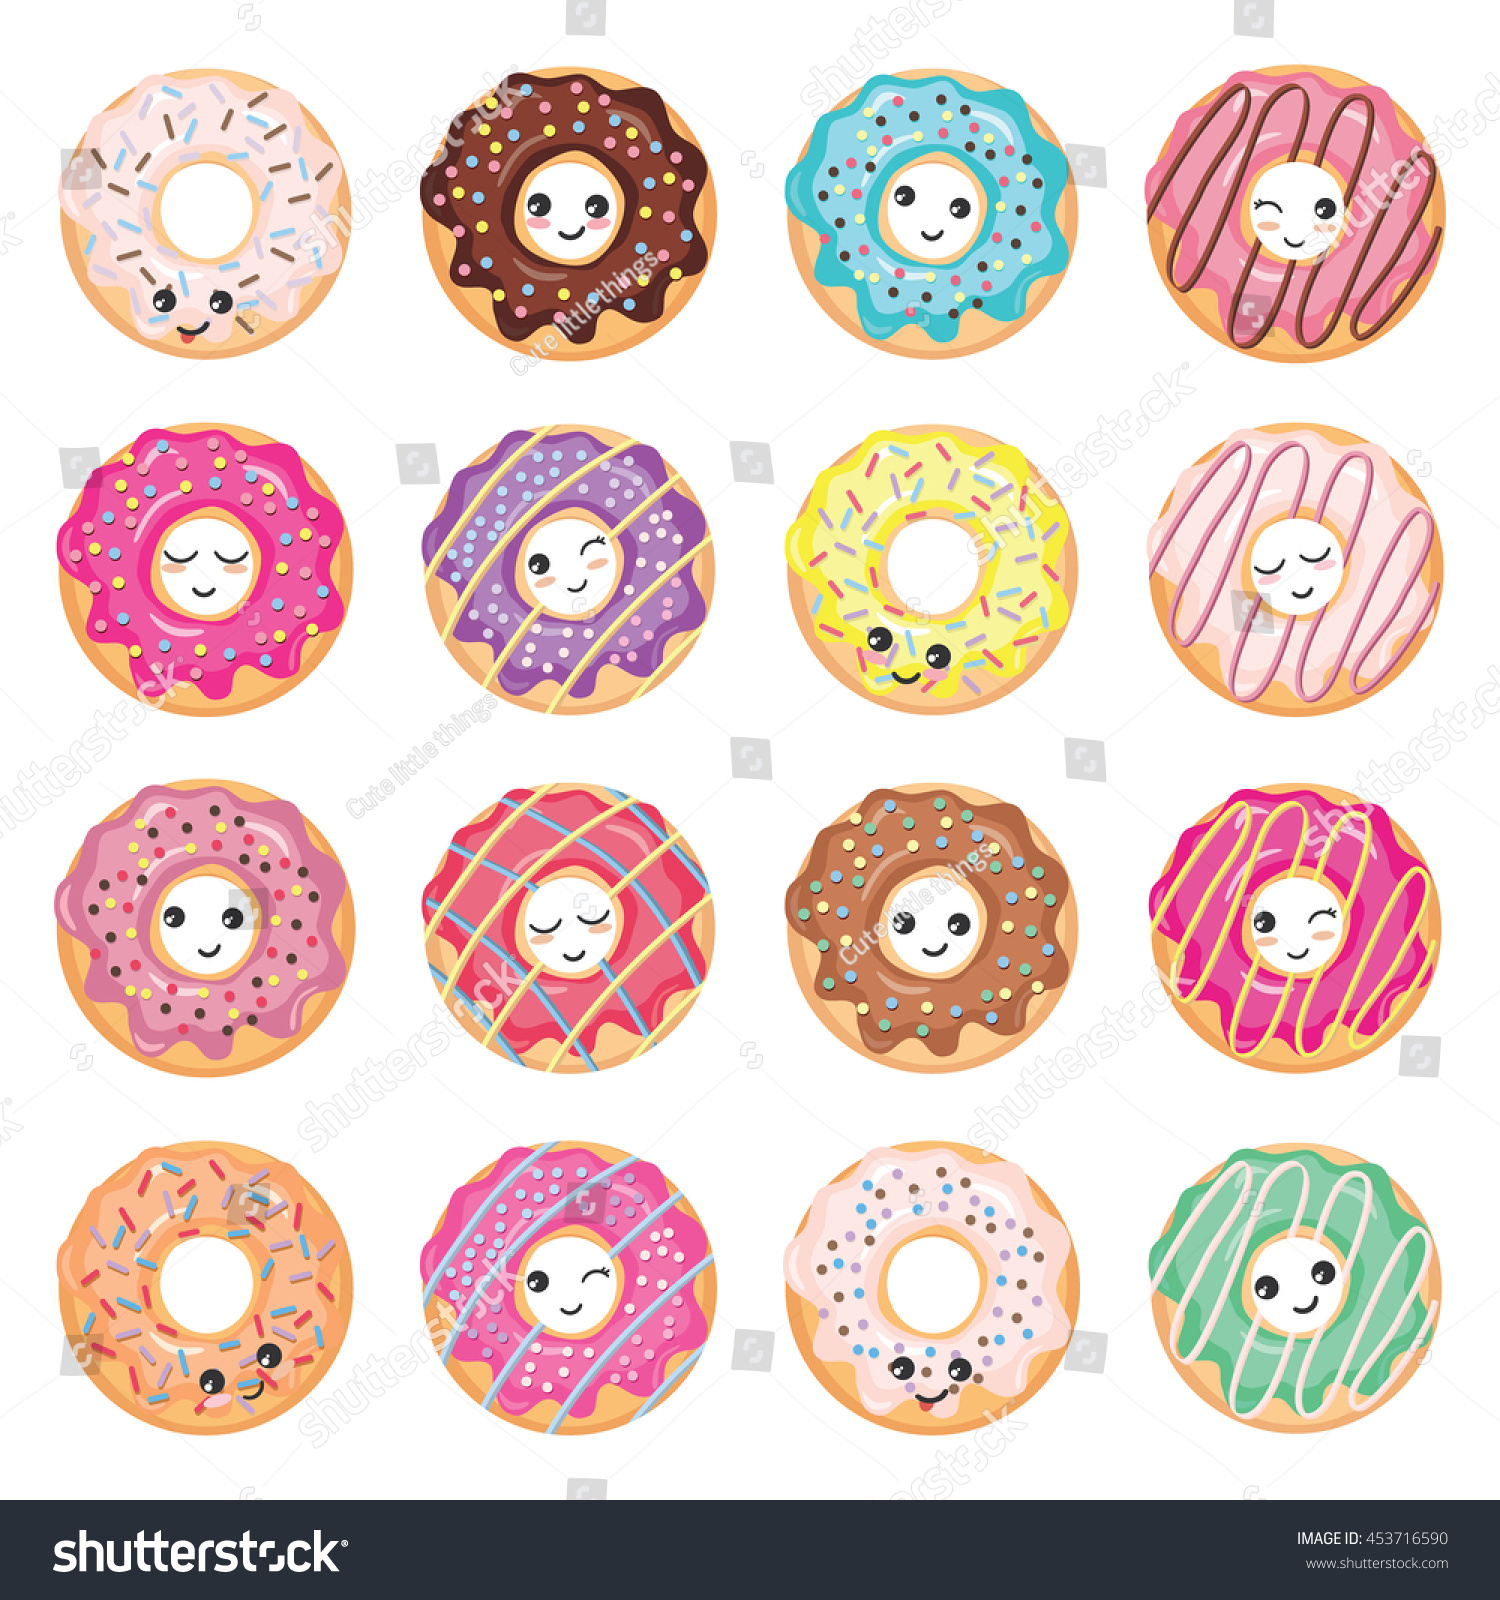 Kawaii Glazed Donuts Set Isolated On Stock Vector ...